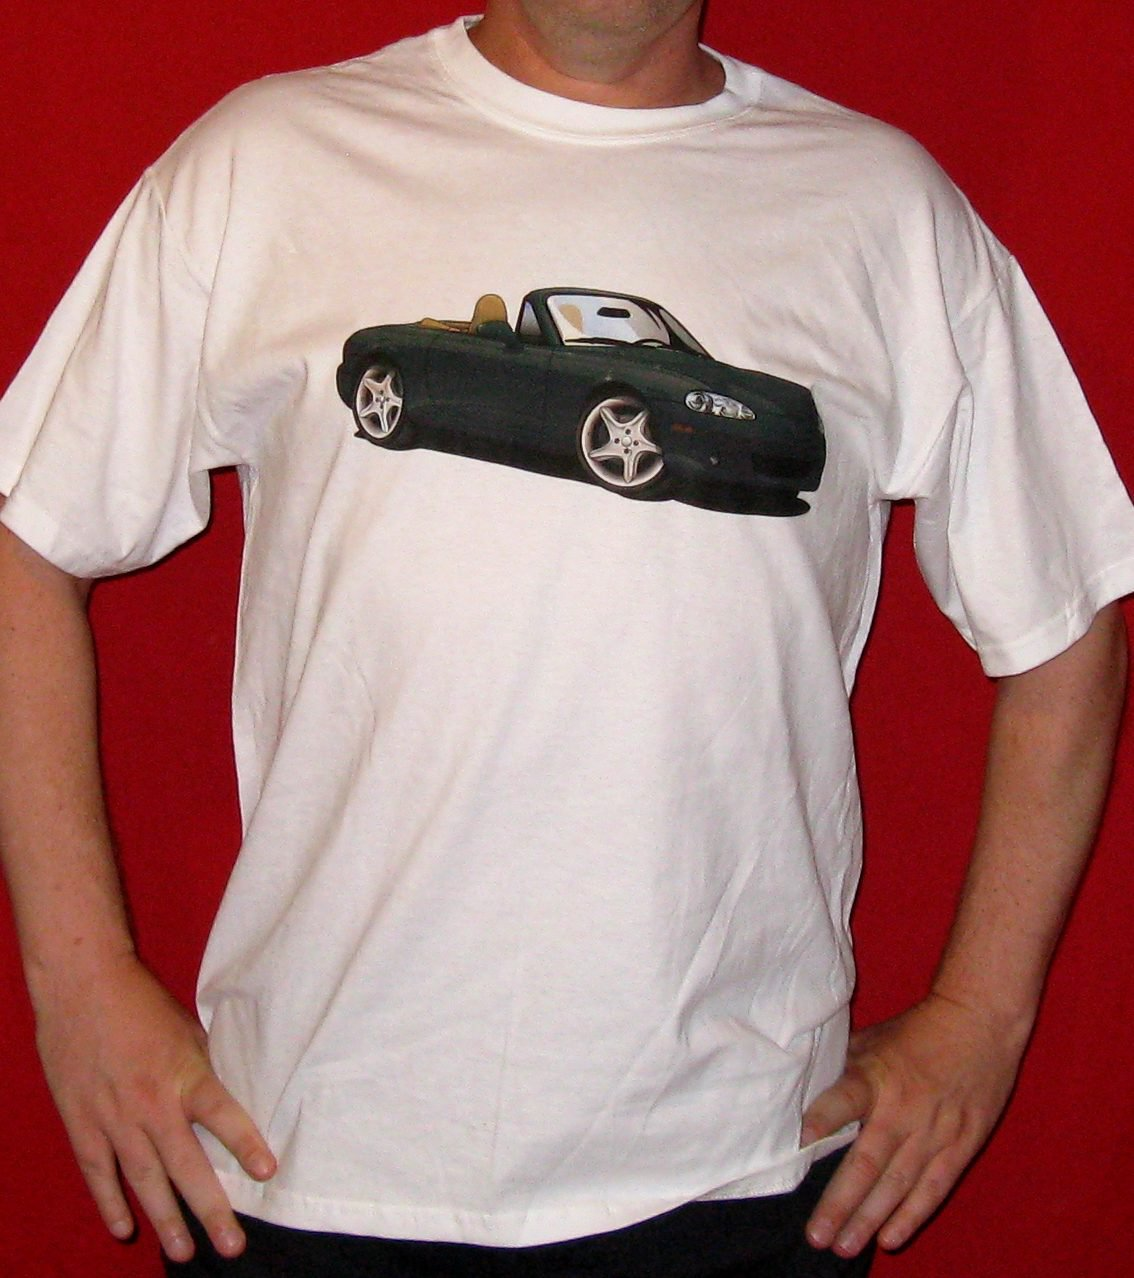 Second Generation Mazda MX-5 Miata T-Shirt - Roadster